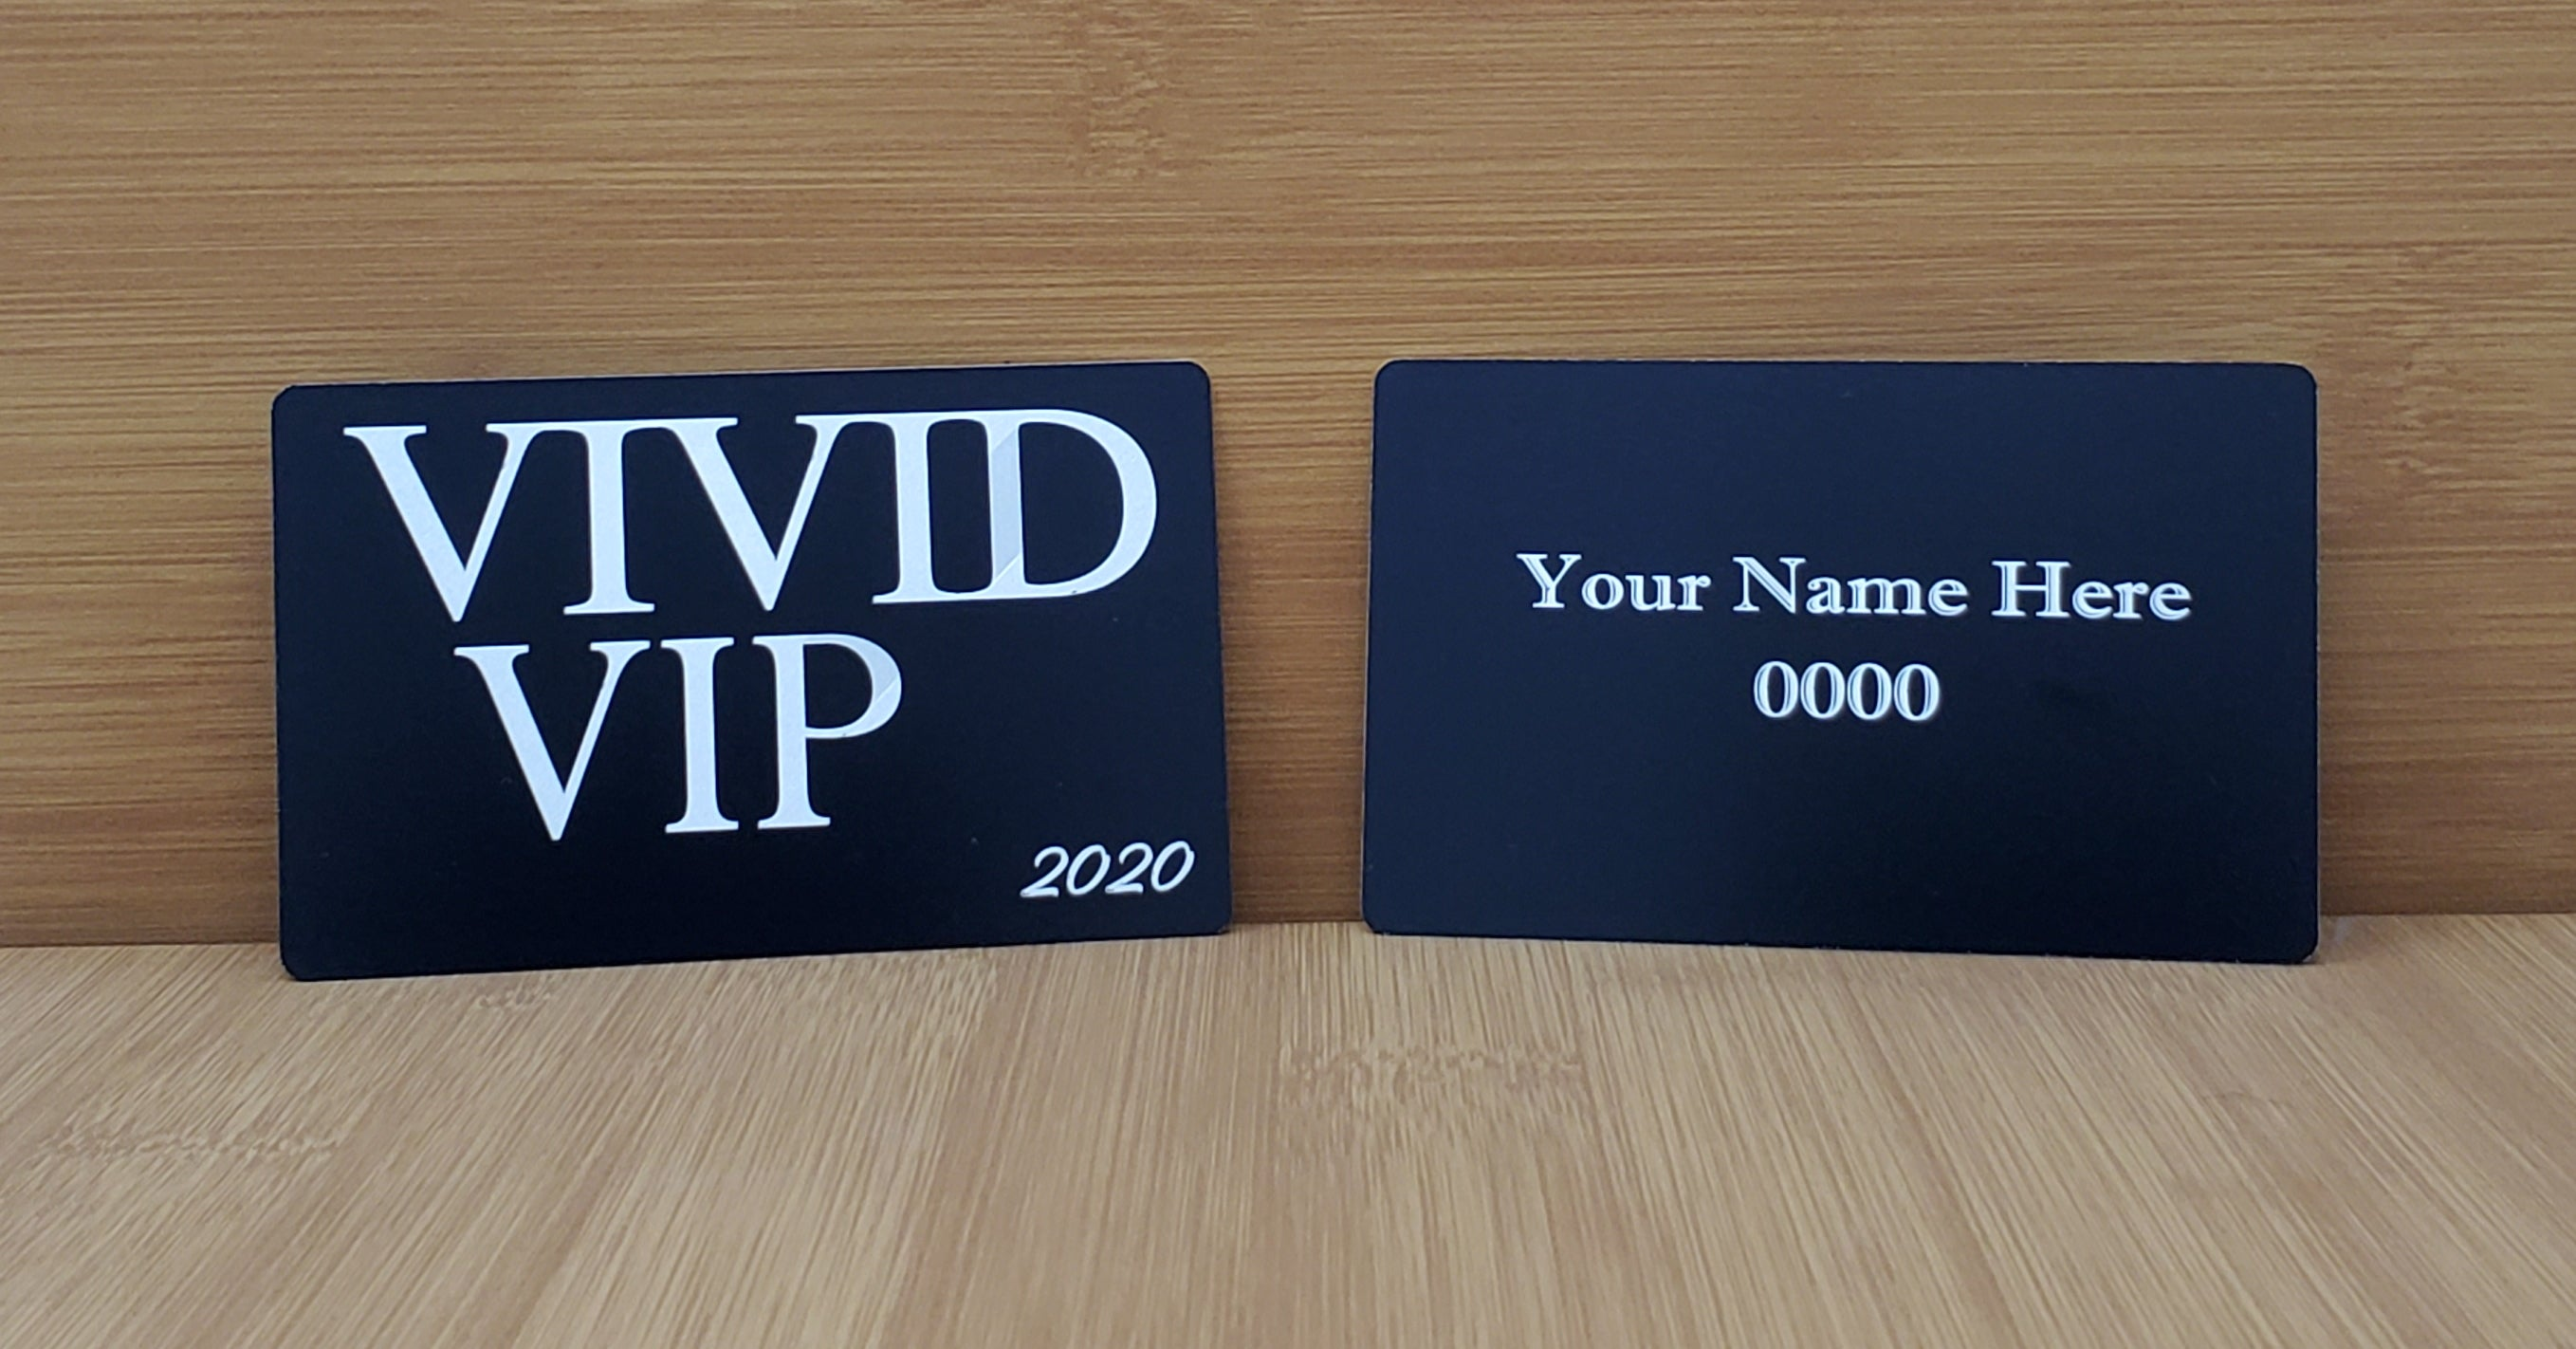 Annual VIVID VIP MEMBERSHIP & CARD